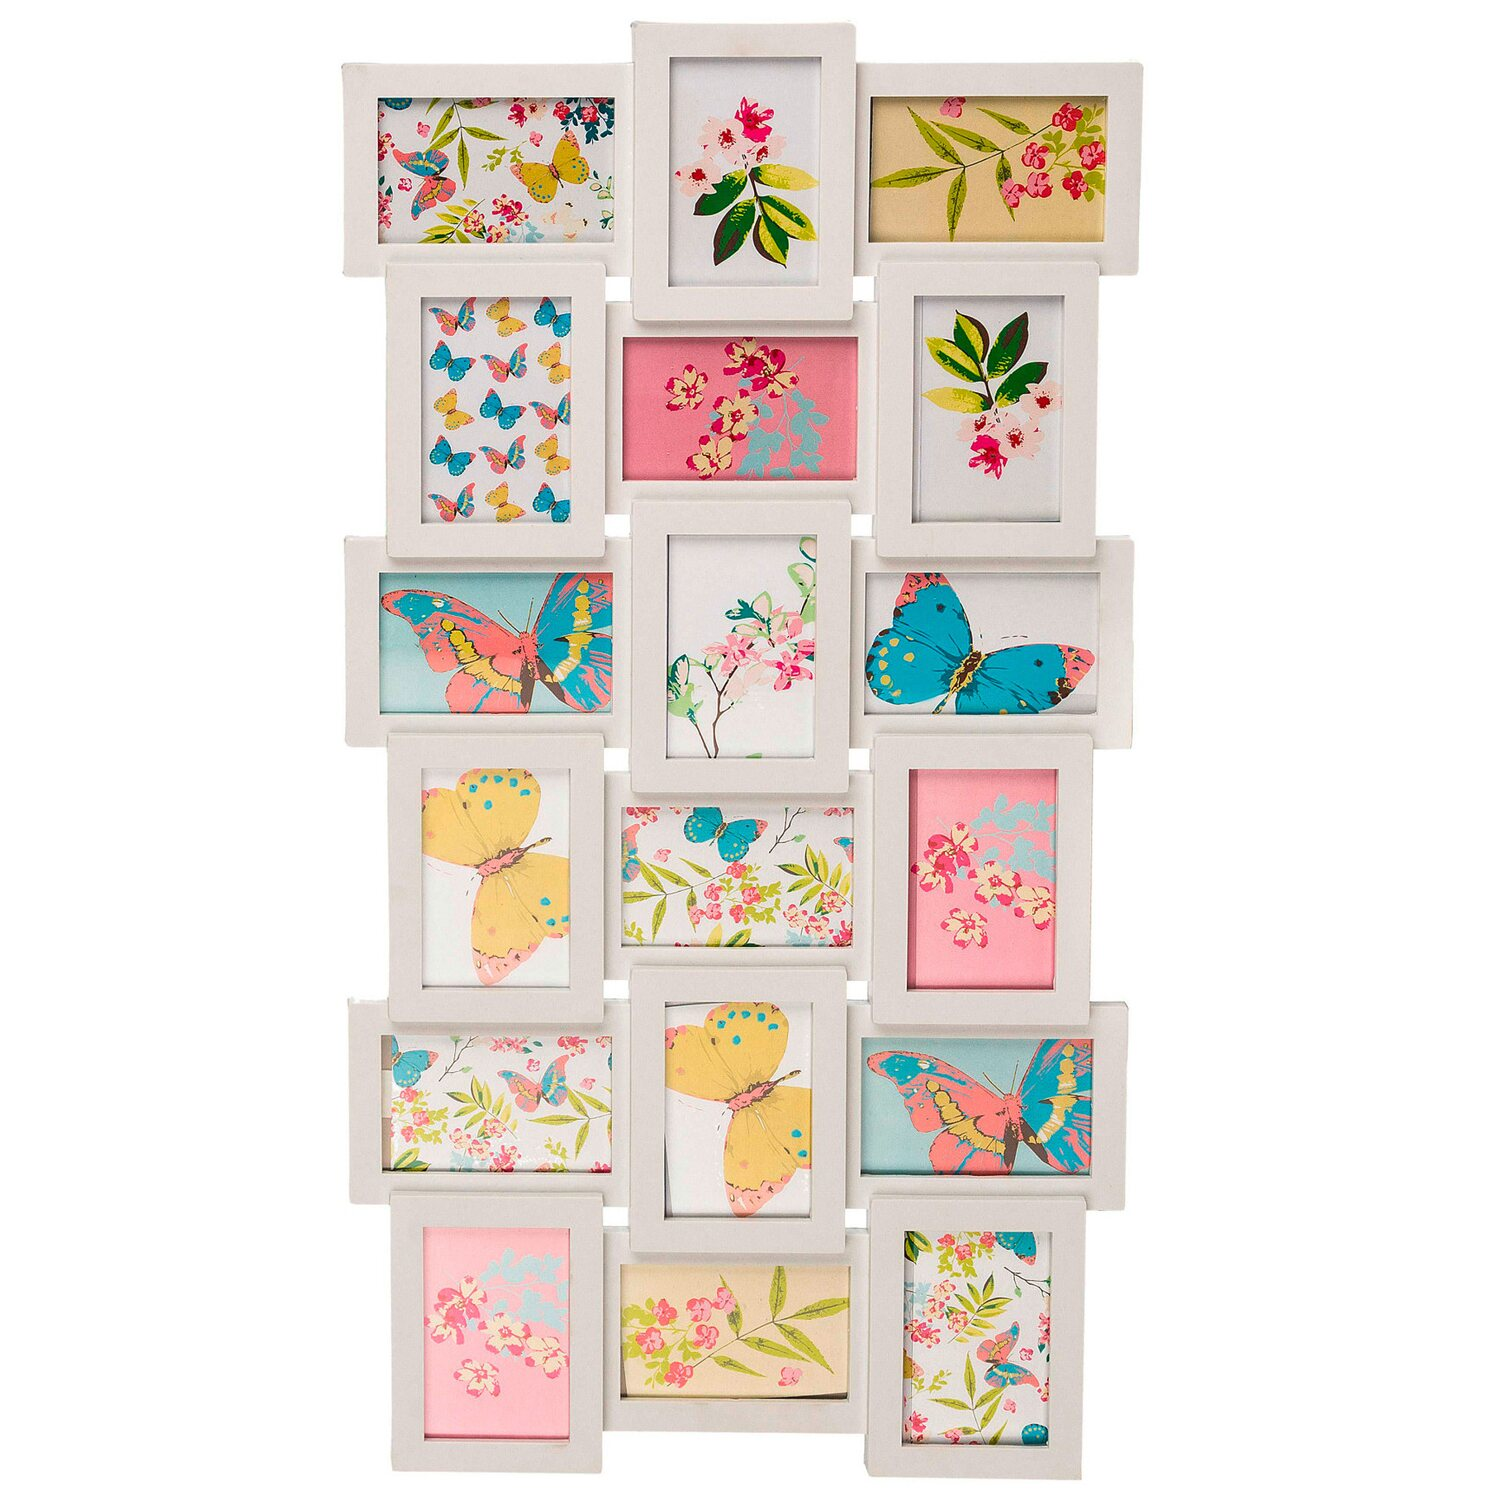 Best of home Bilderrahmen Graphic 46,5 cm x 89,5 cm x 2 cm kaufen ...